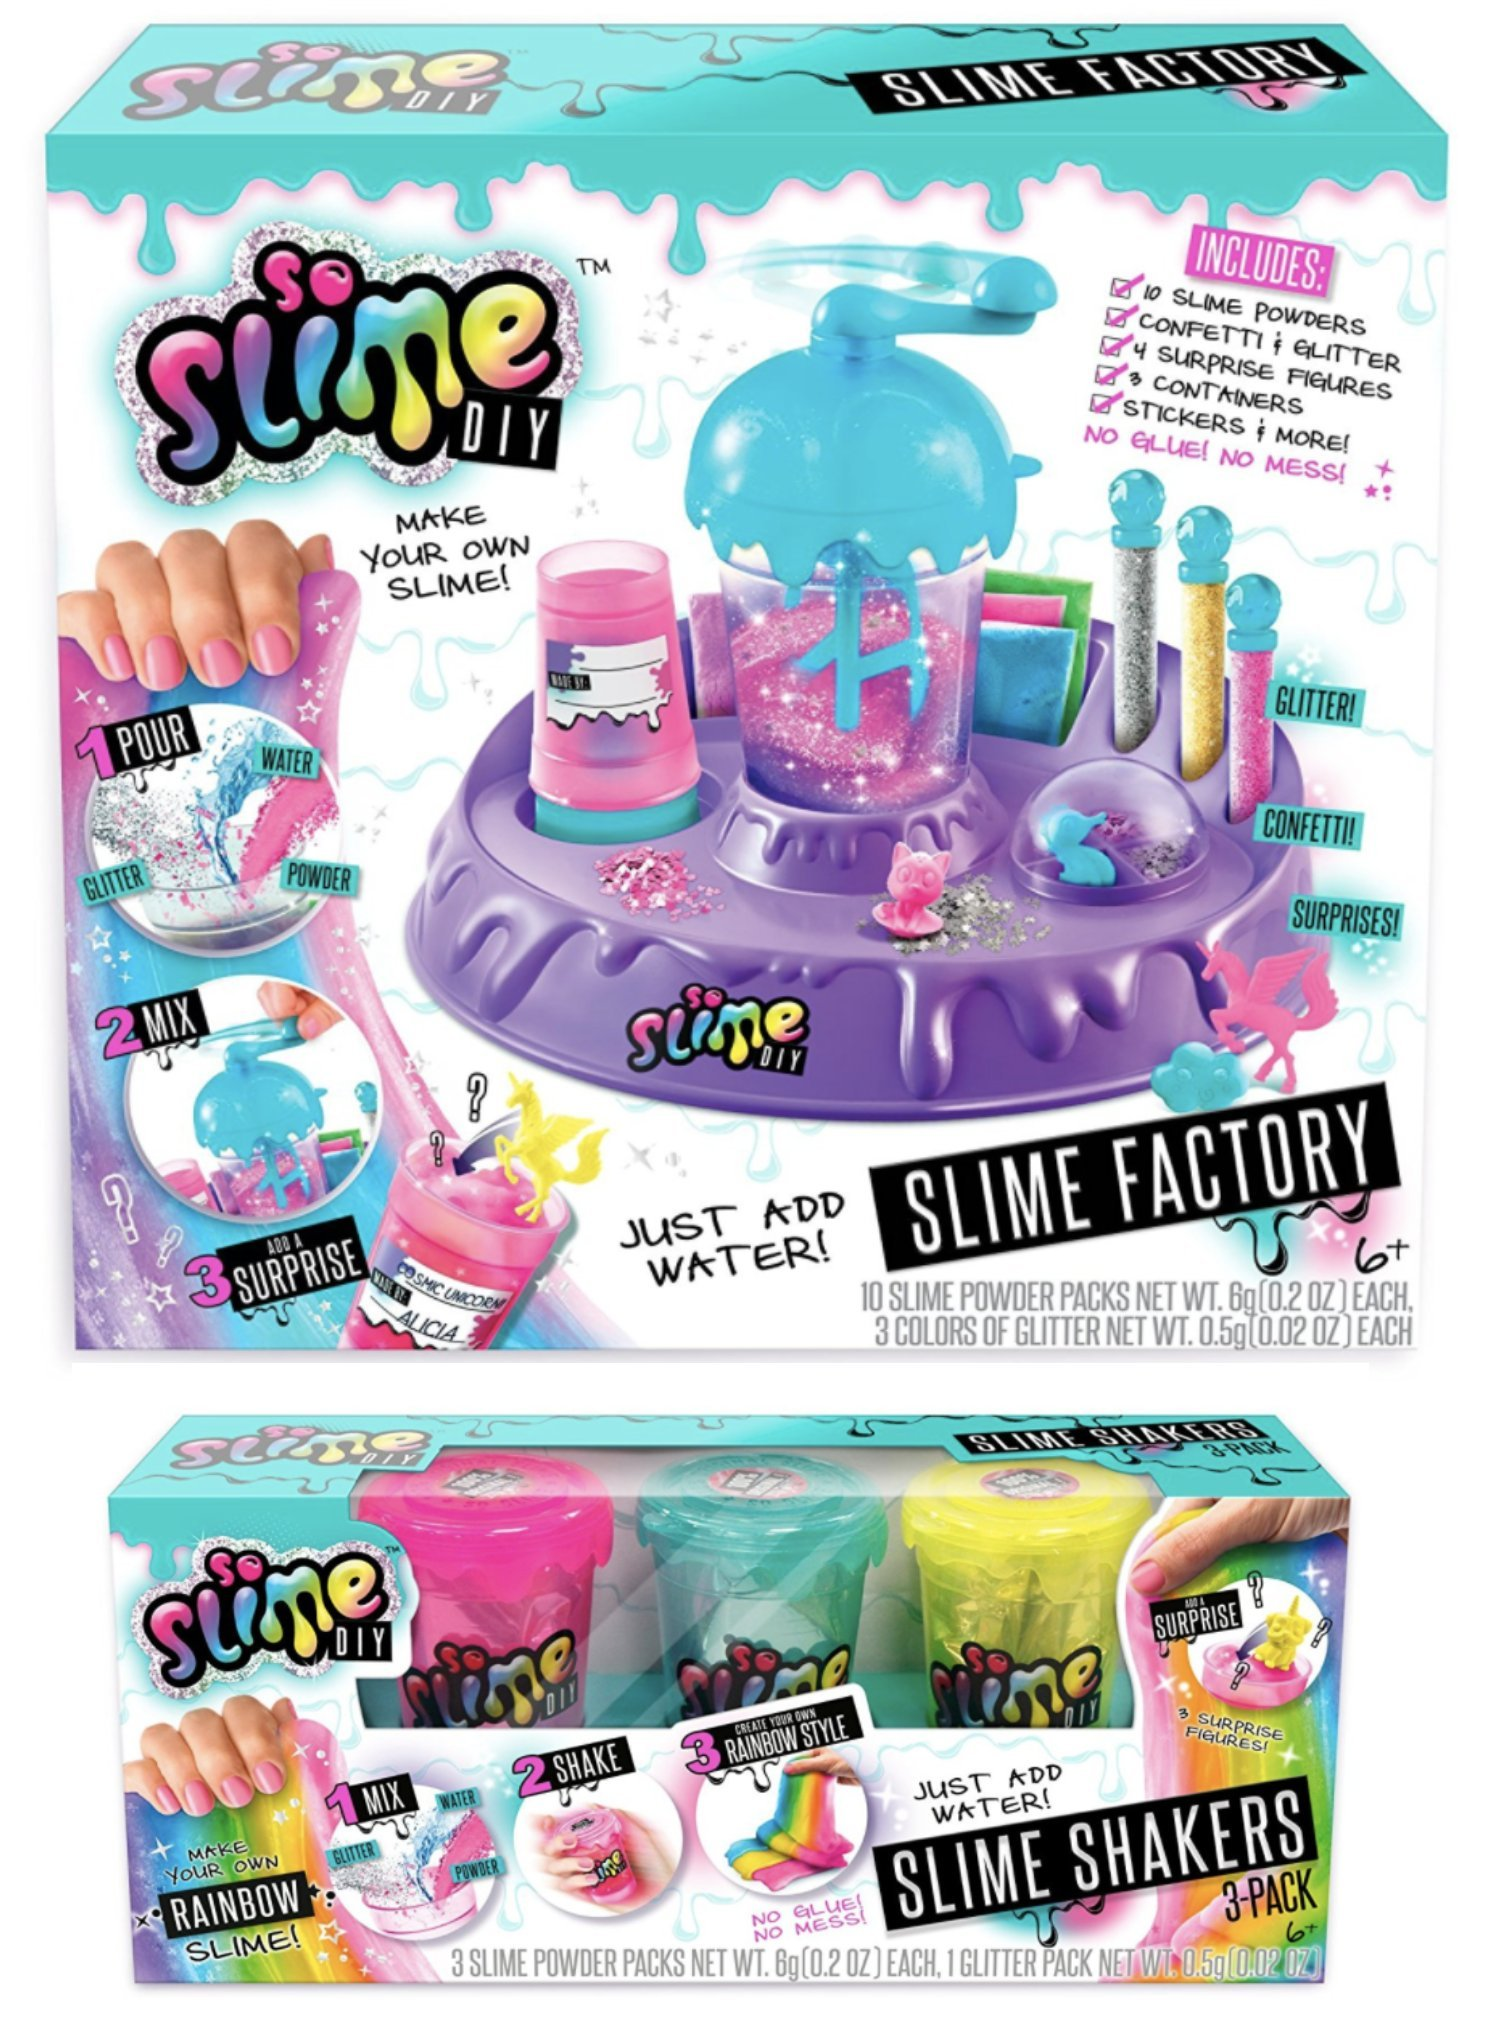 So Slime DIY! Make Your Own Slime! (Factory + Rainbow 3 Pack)